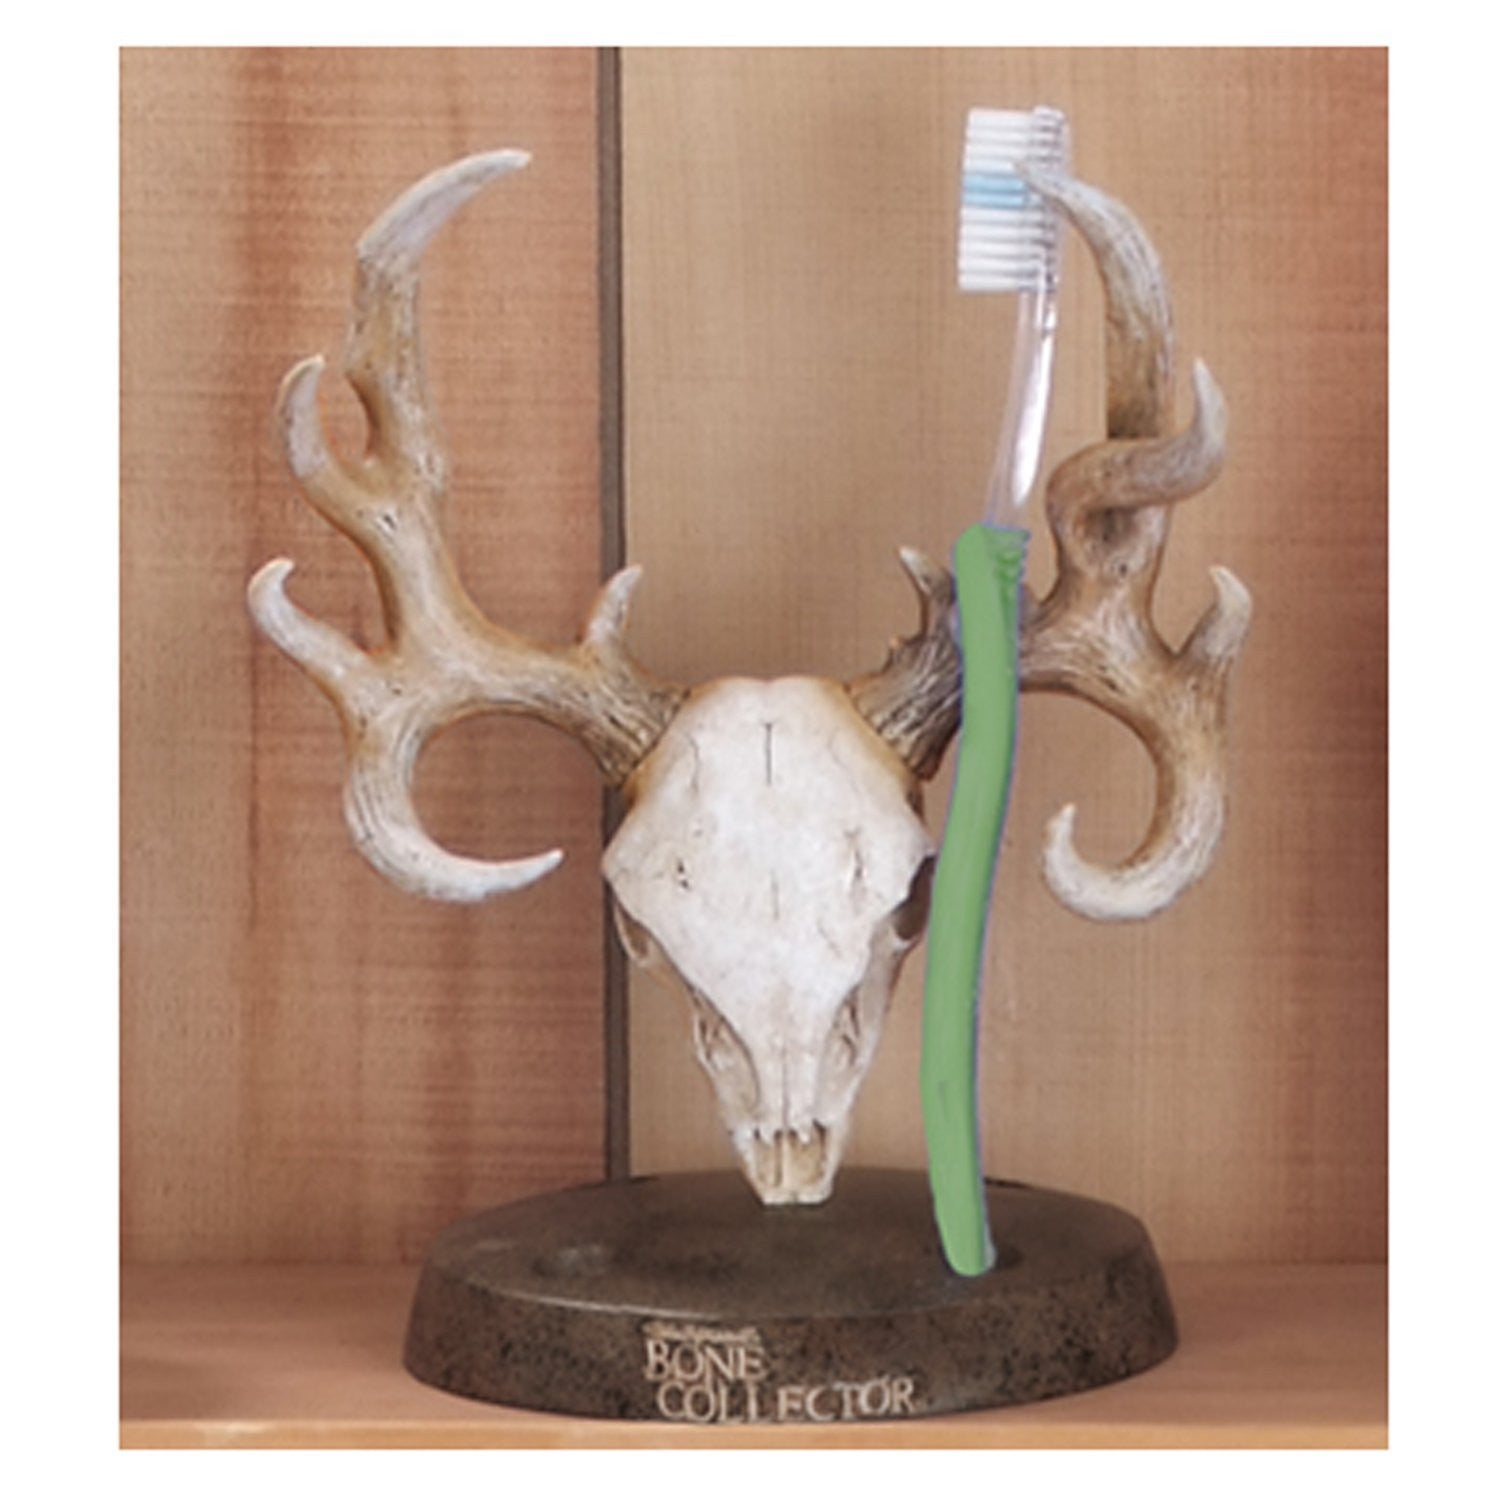 Bone Collector Toothbrush Holder - Back40Trading2